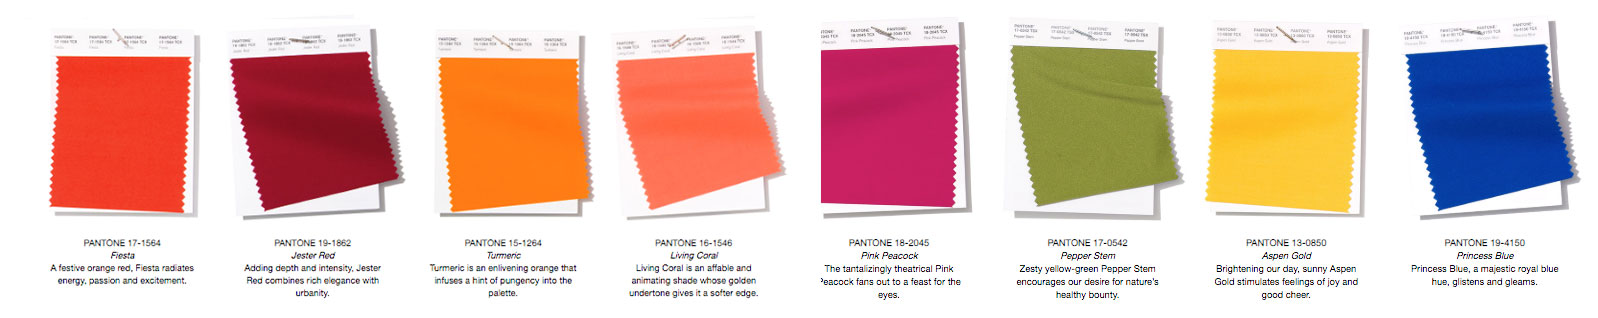 Pantone Color Institute 2019